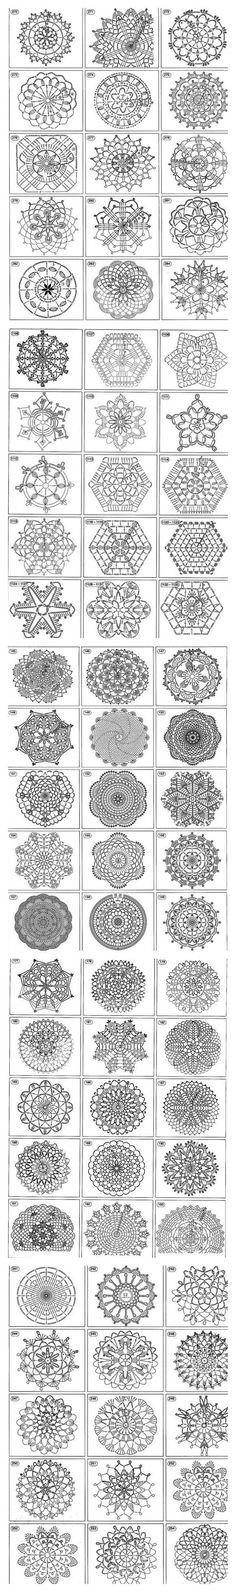 FREE DIAGRAM ~ Over 1400 free crochet motif, afghan squares, coasters, snowflakes, doilies, triangles stitch chart diagram patterns. Great for baby blankets, afghans, table cloths, towel edging, Christmas. ornaments etc.